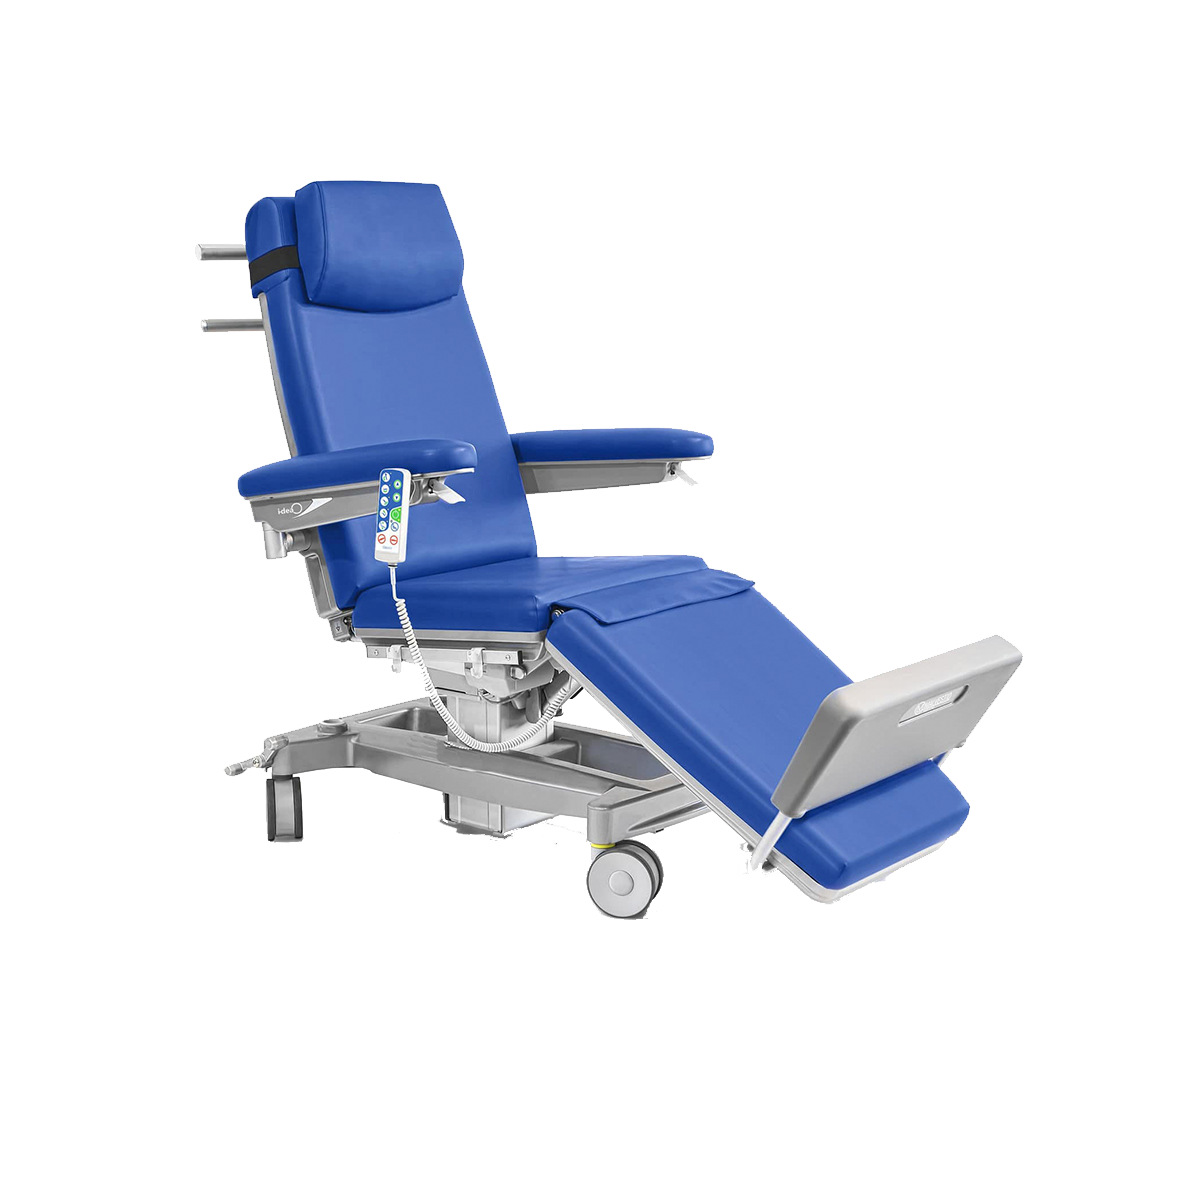 Electric treatment chairs